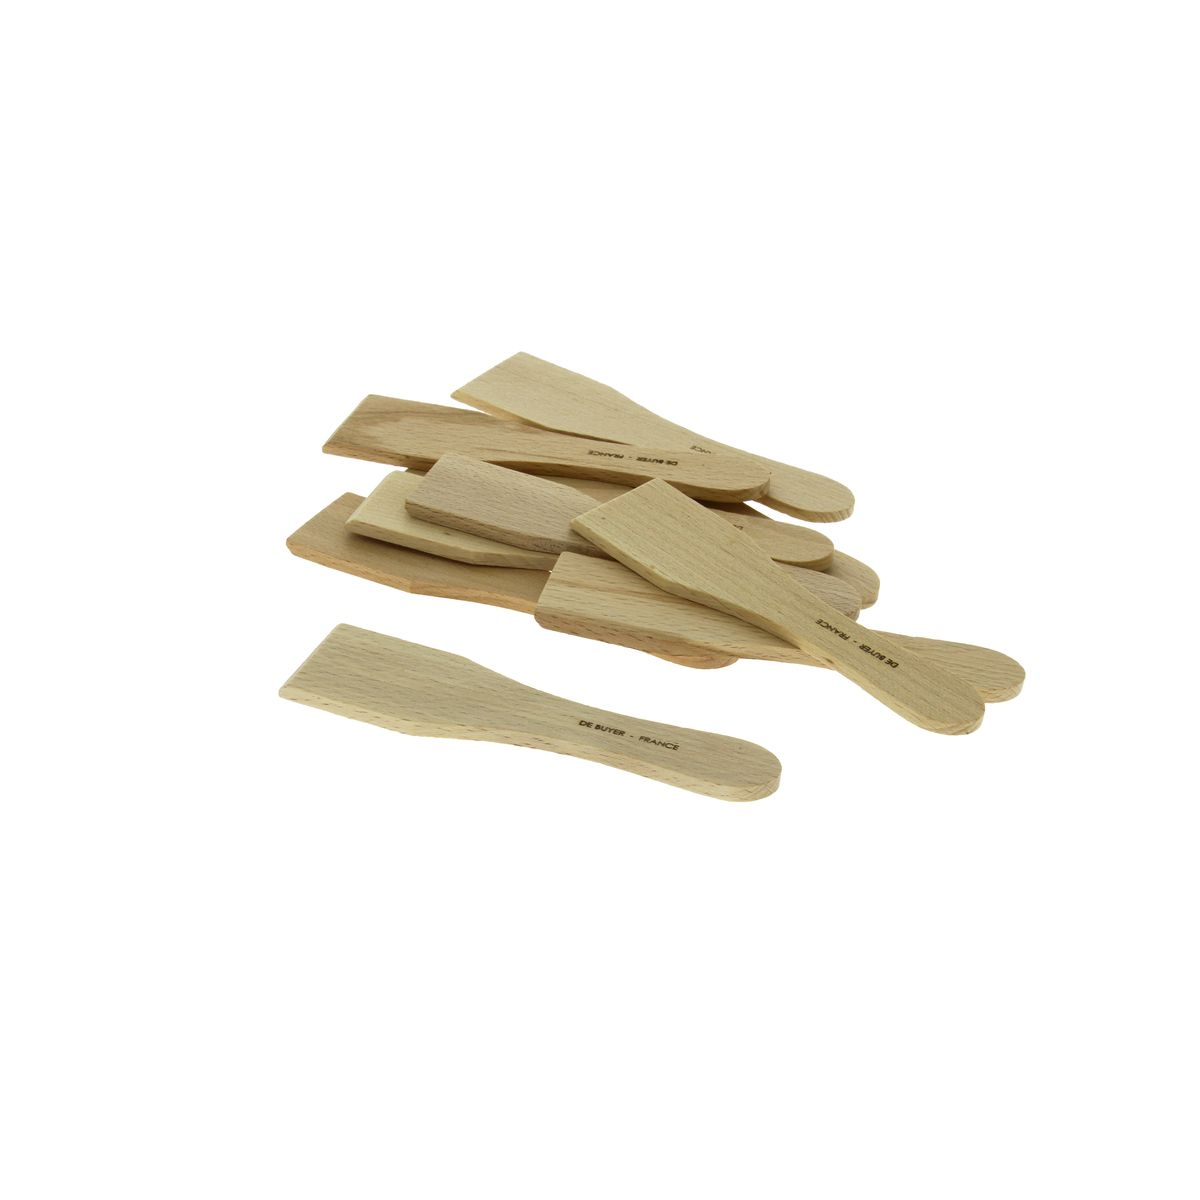 Set de 10 mini spatules à raclette bois - De Buyer